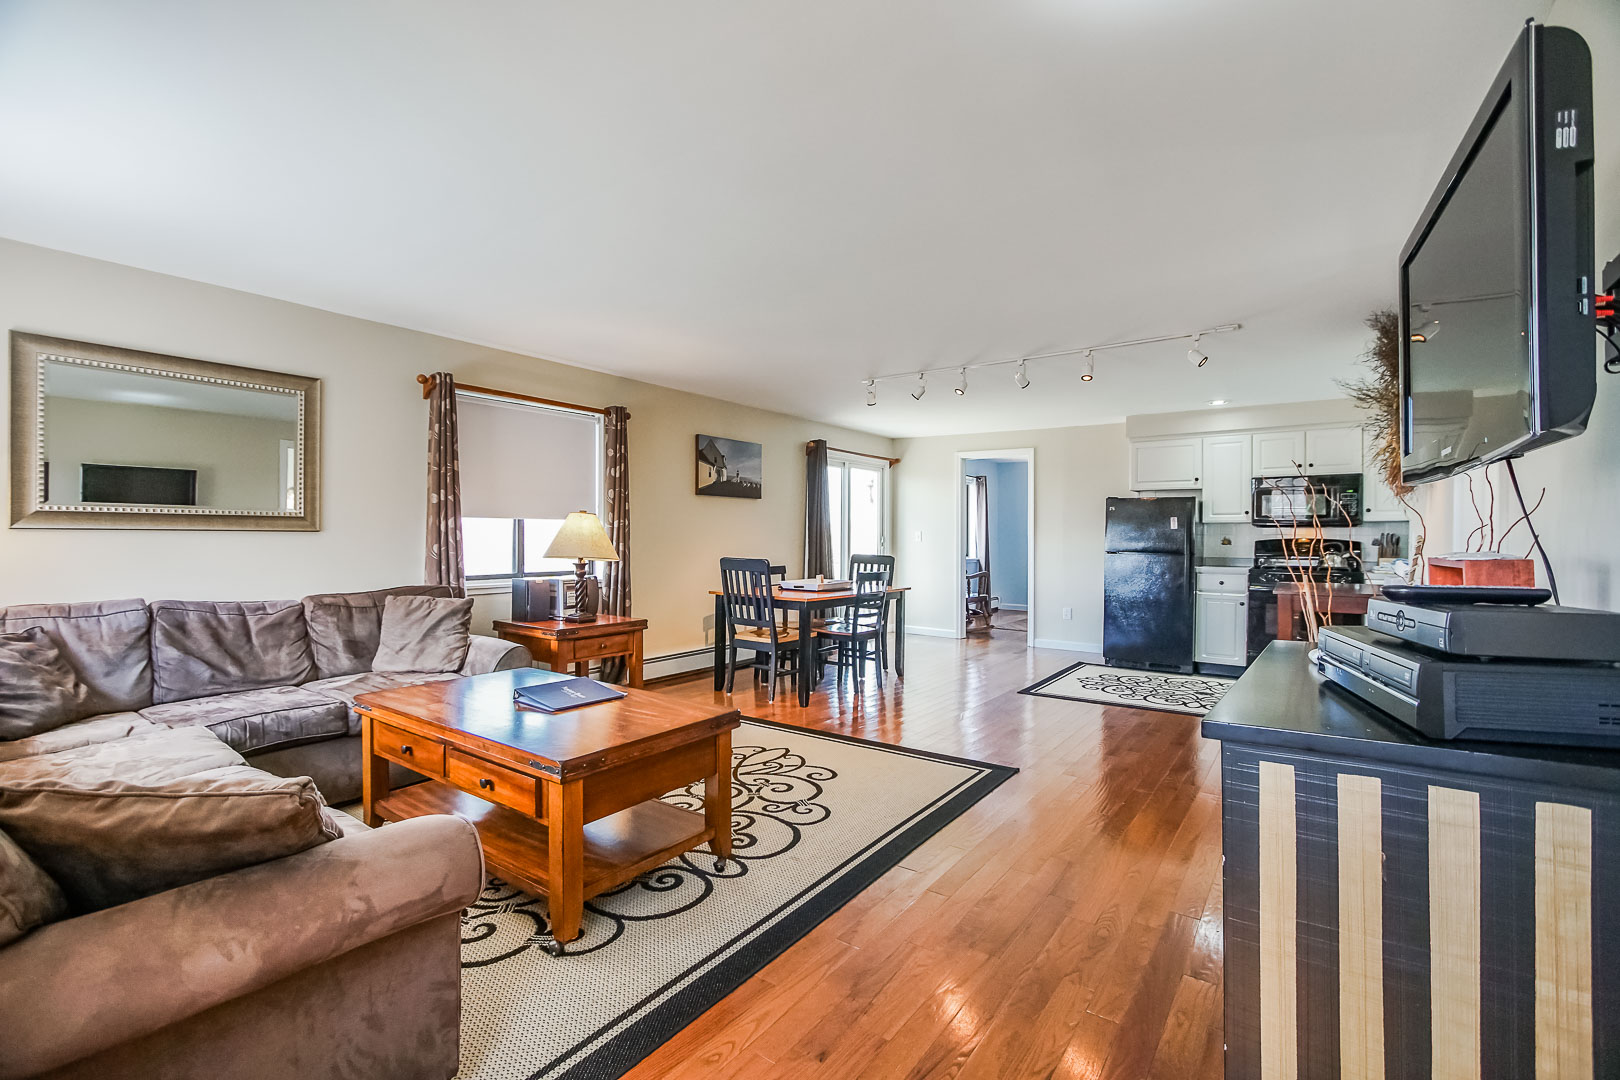 A spacious living room area  at VRI's Neptune House Resort in Rhode Island.